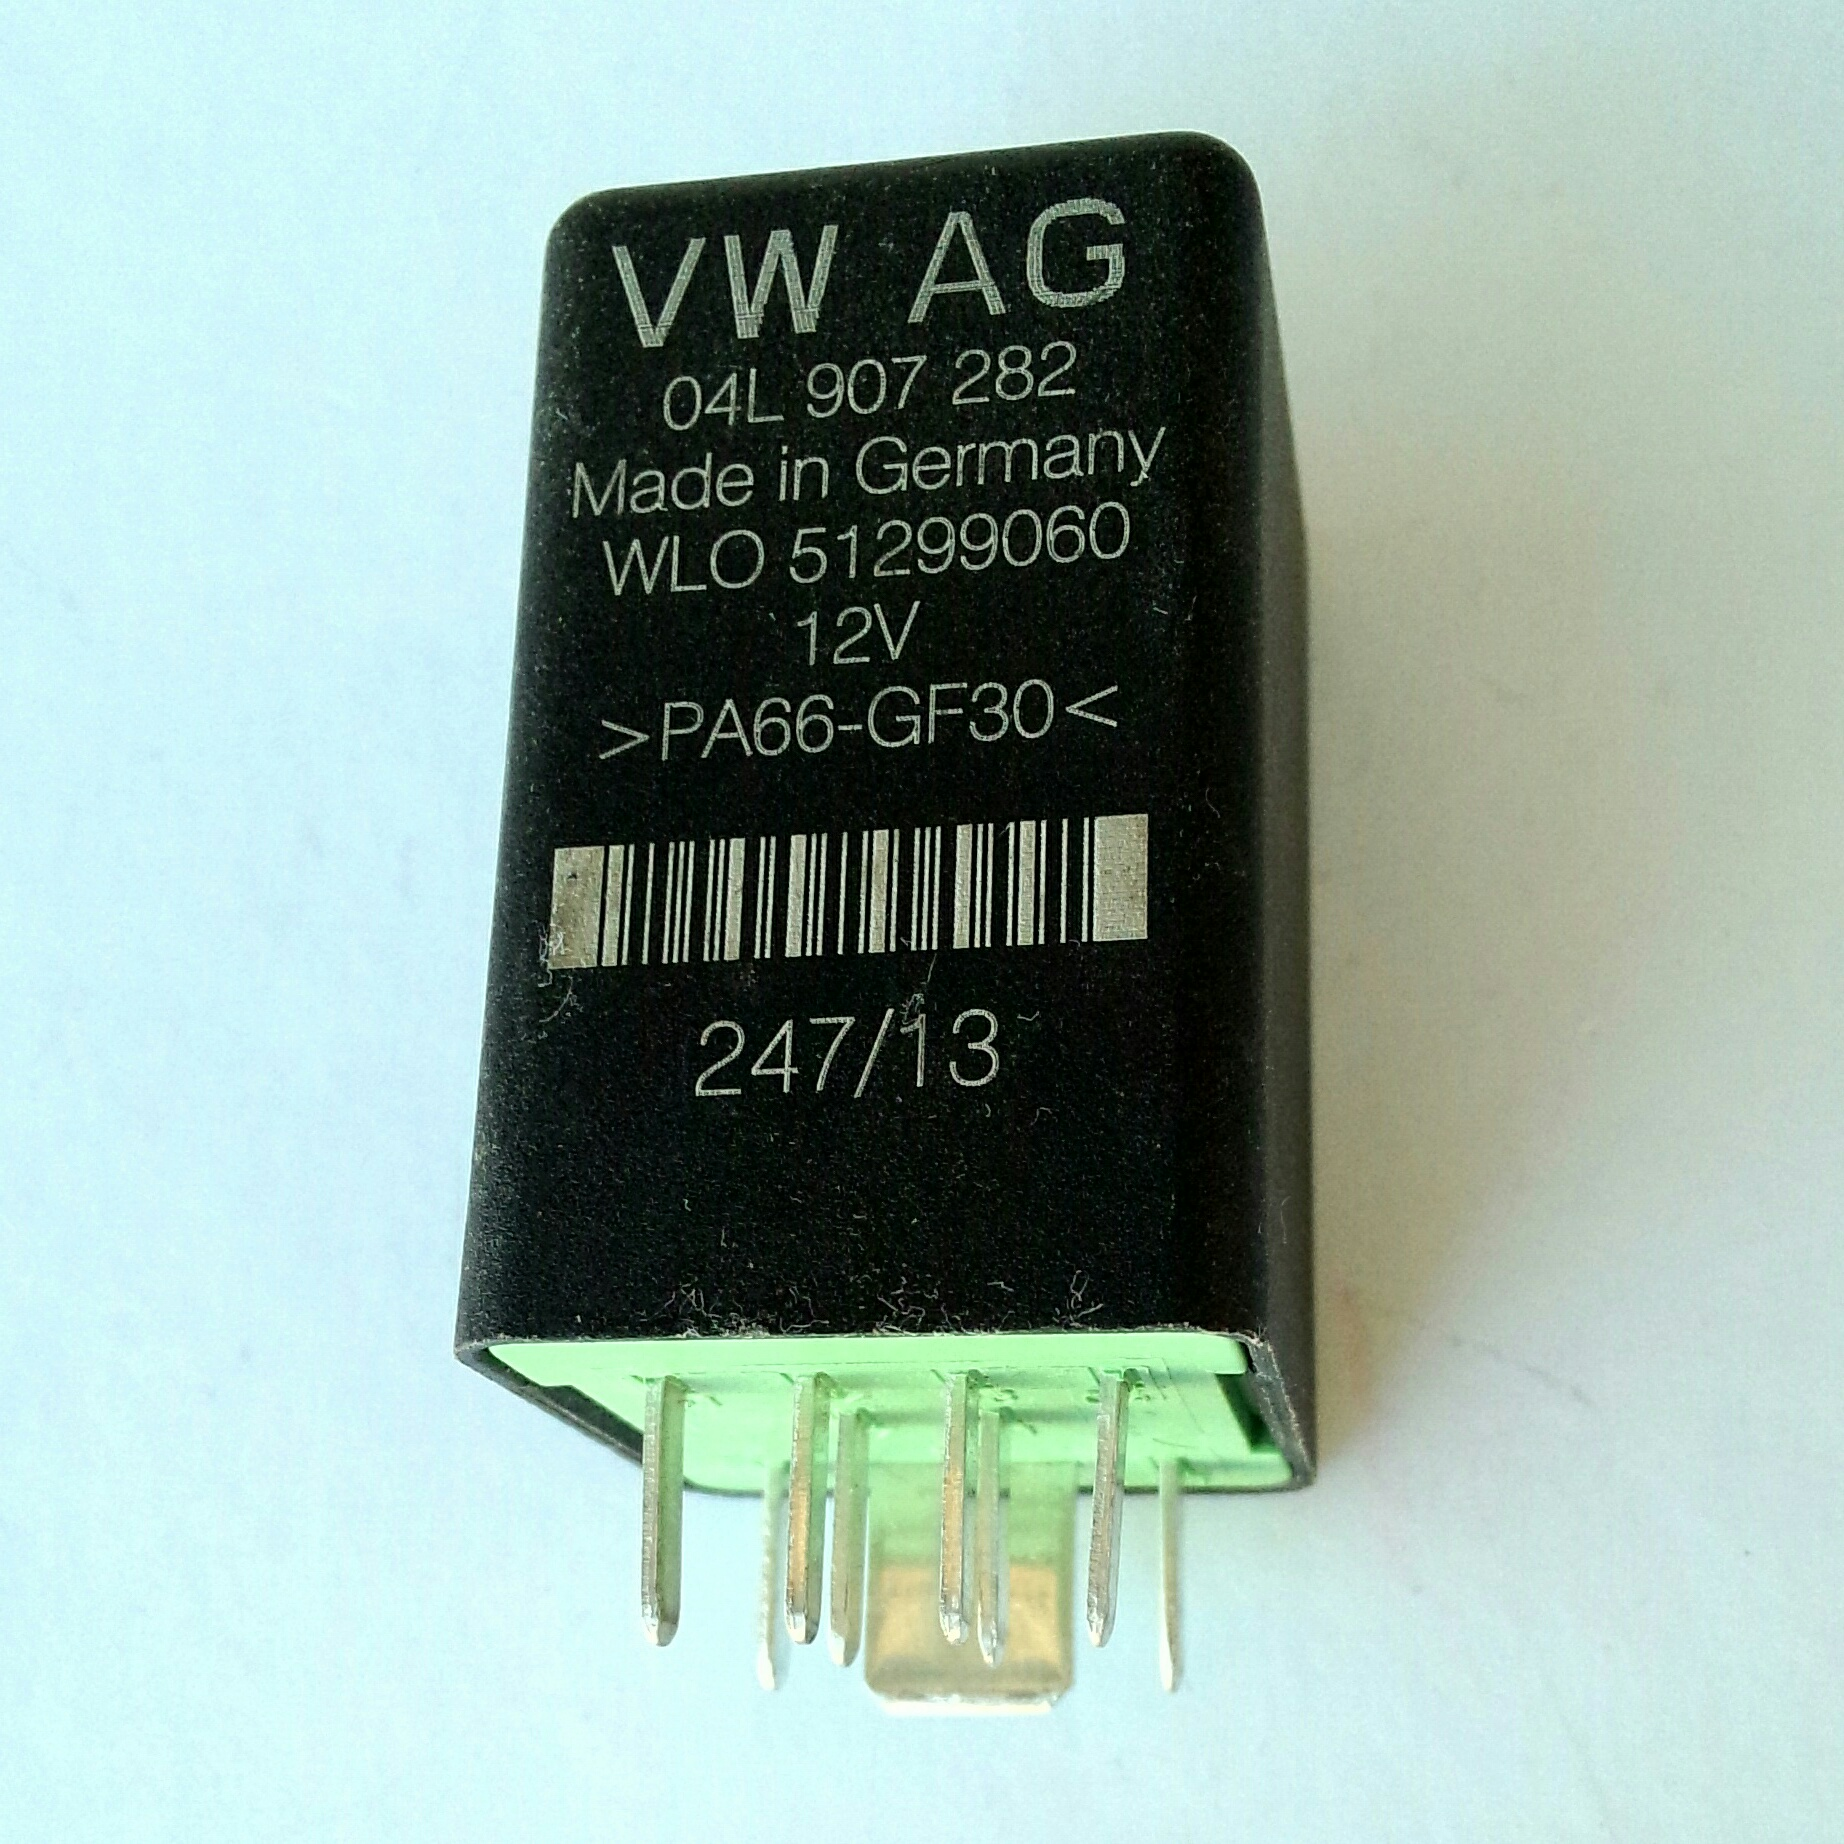 Реле свечей накала VW AG 04L 907 282 Made in Germany WLO 51299060 12V >PA66-GF30